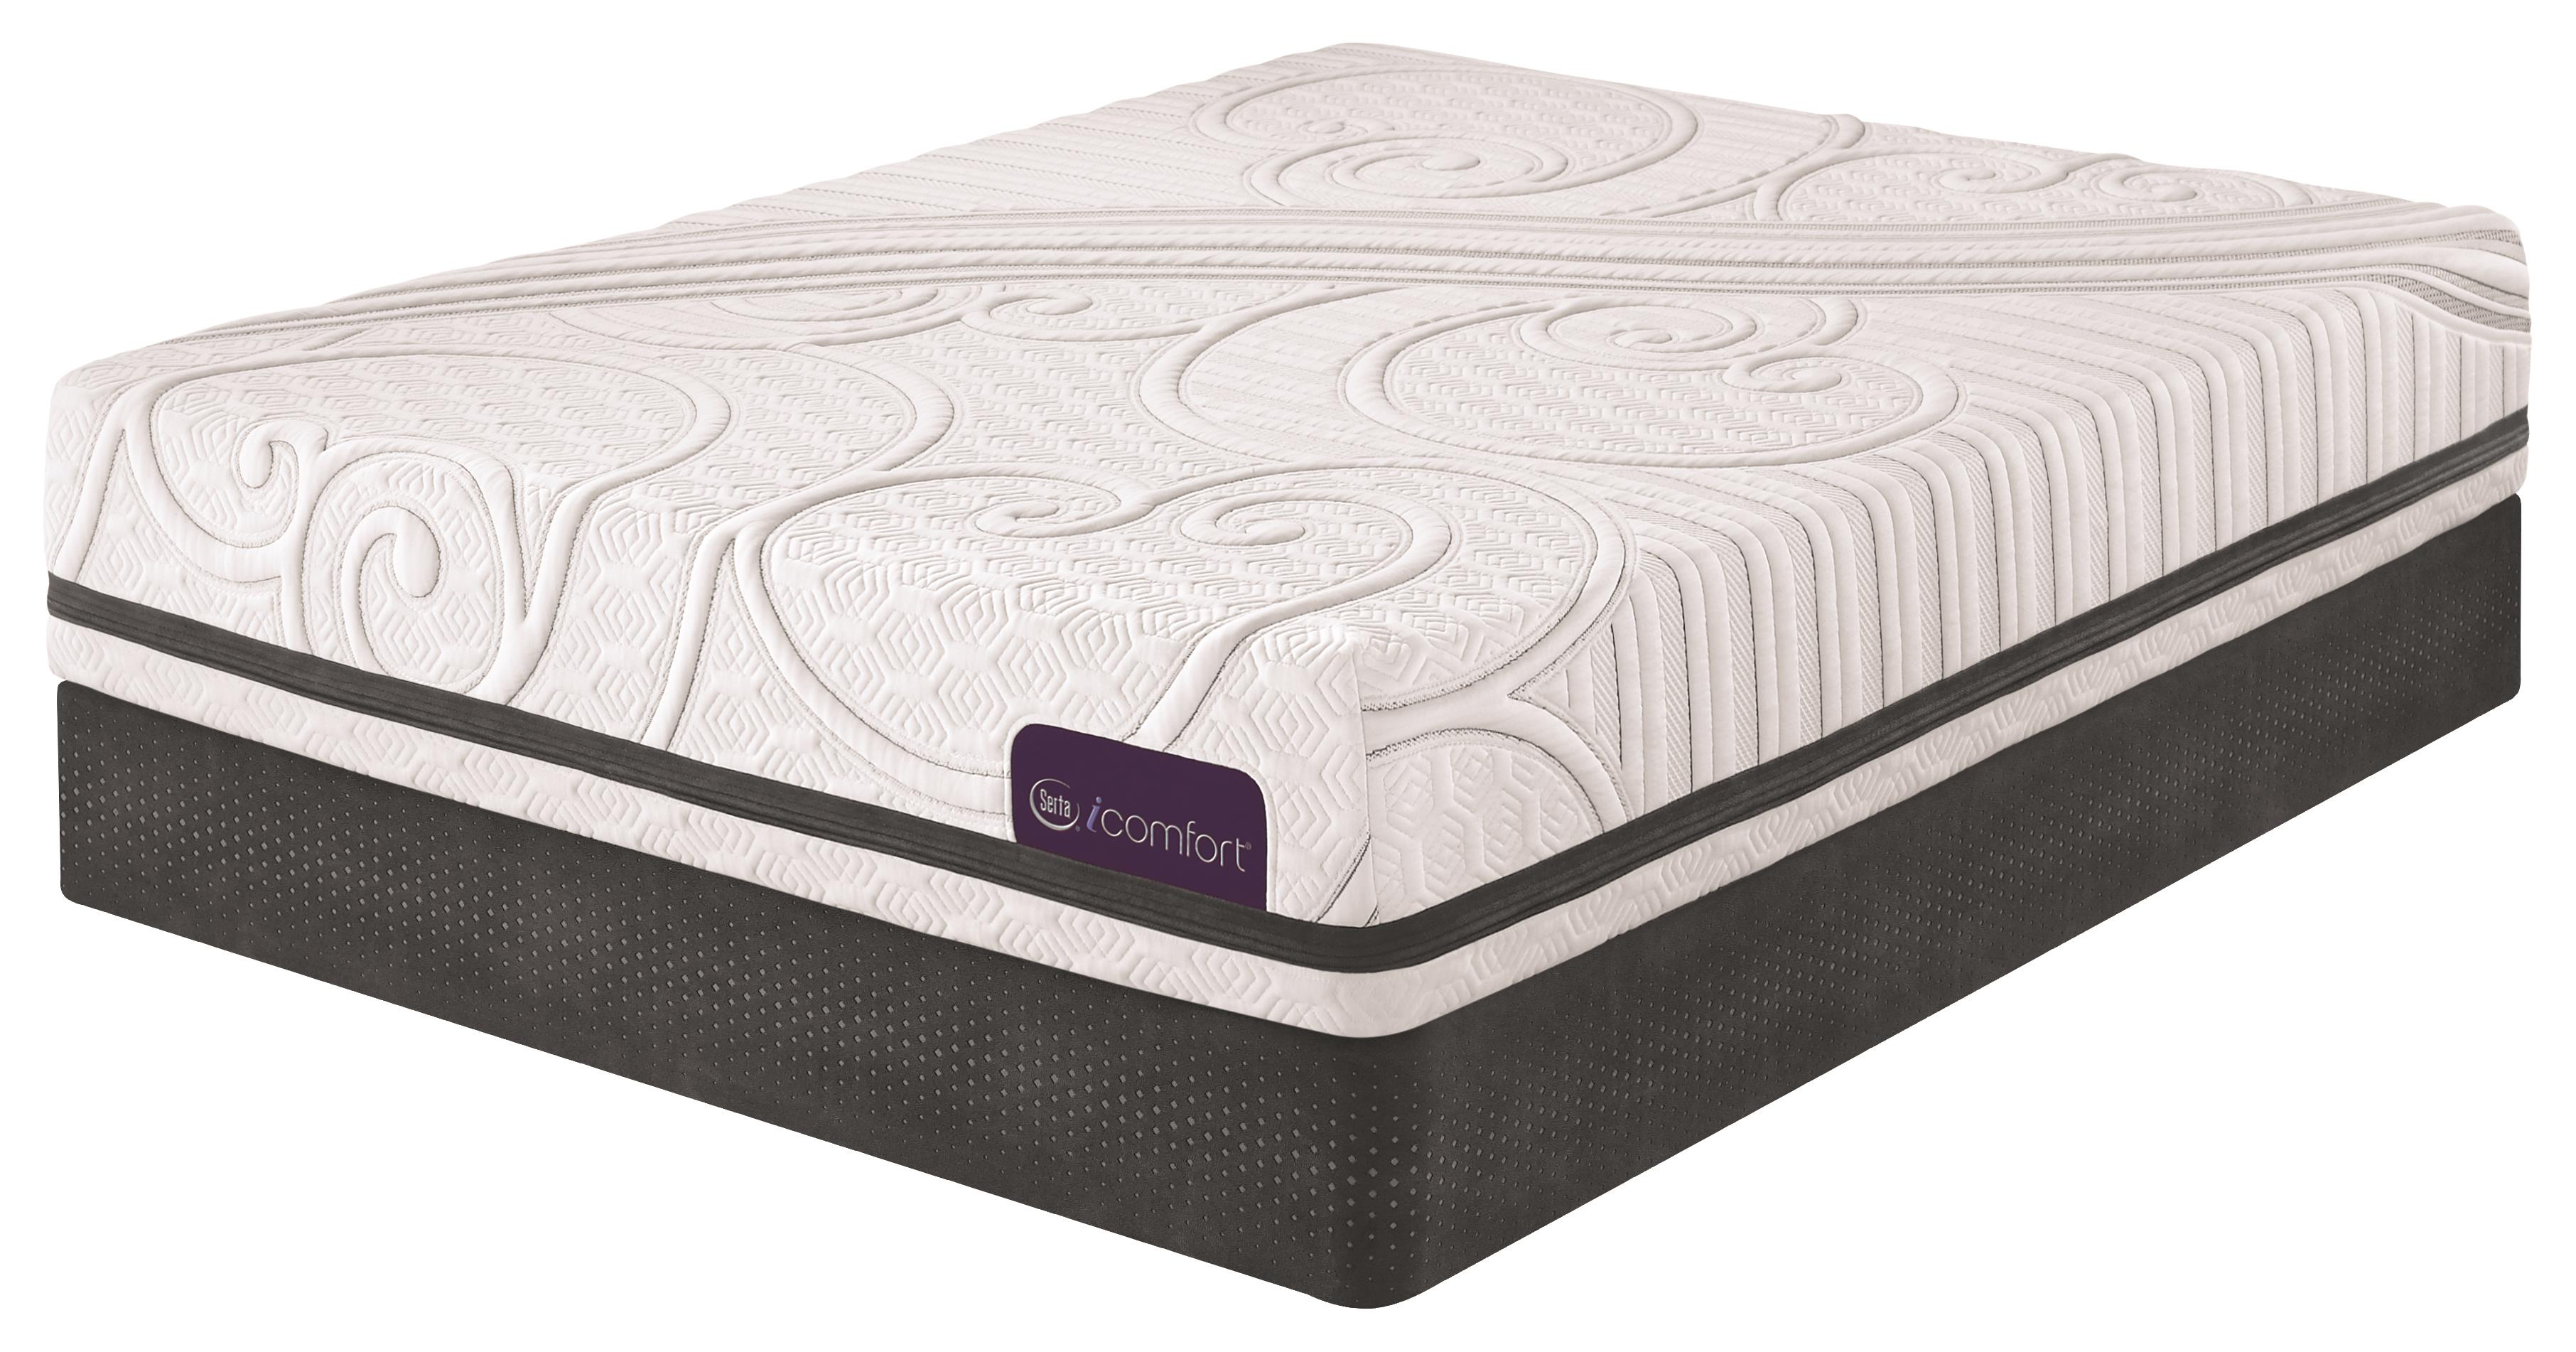 Serta iComfort Savant III Full Plush Gel Memory Foam Mattress Set - Item Number: SavantIIIP-F+StabL-Base-F